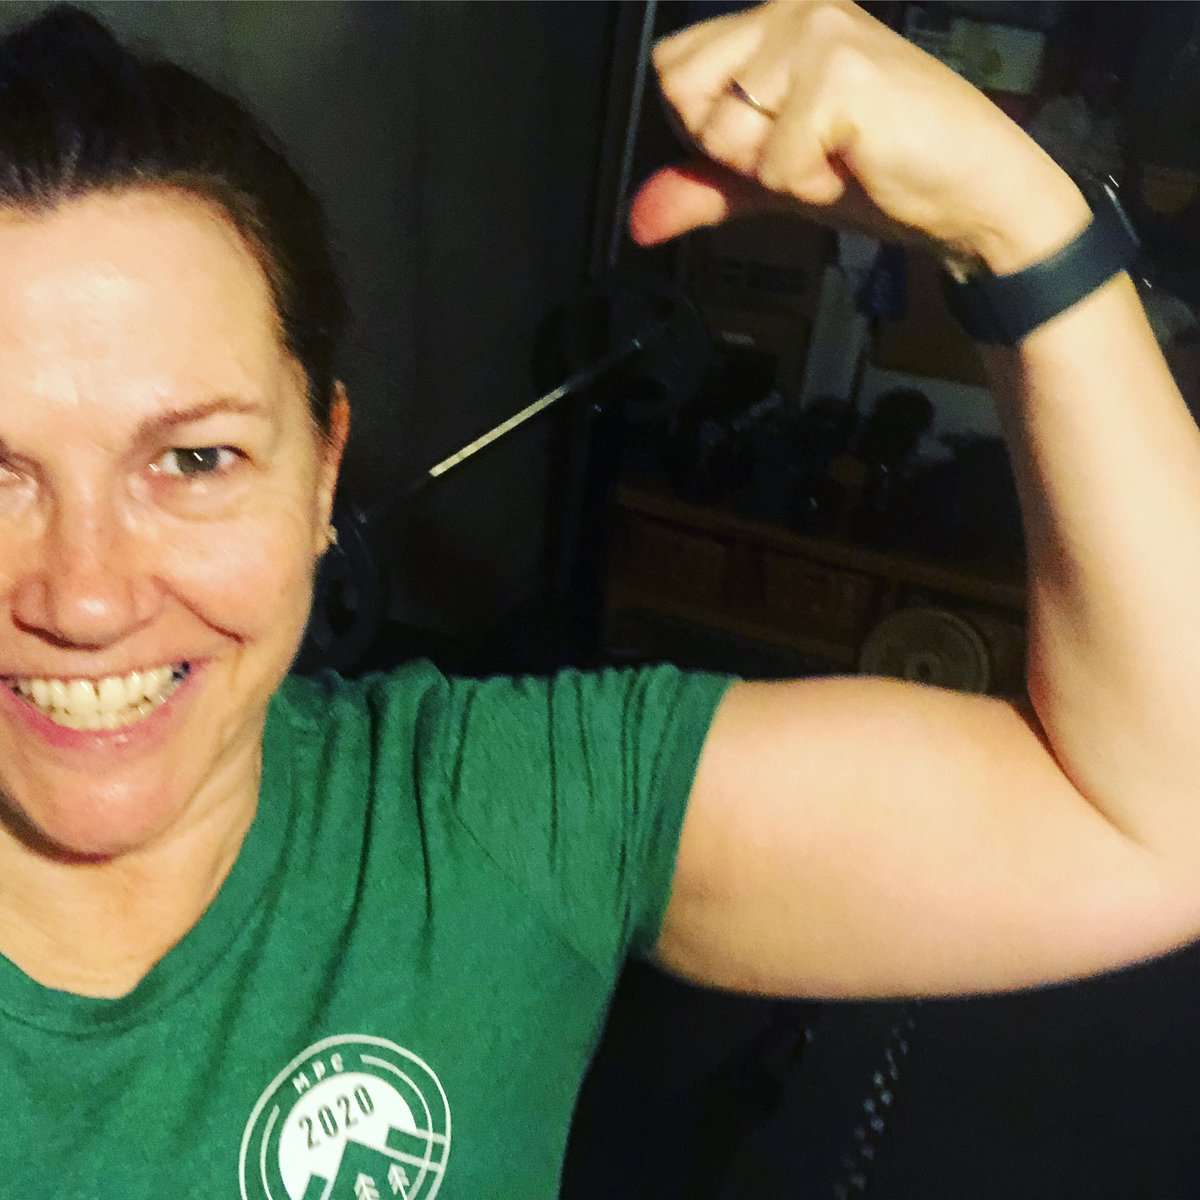 Wearing my @mypeakchallenge 2020 shirt finally! Nice green to celebrate the first full day of spring. Been a bit busy lately ya know . Great week of workouts and running. Keeping me somewhat sane. #CoronaVirus #FlexFriday #HalfMarathonTraining <br>http://pic.twitter.com/1iTqcEmq5F